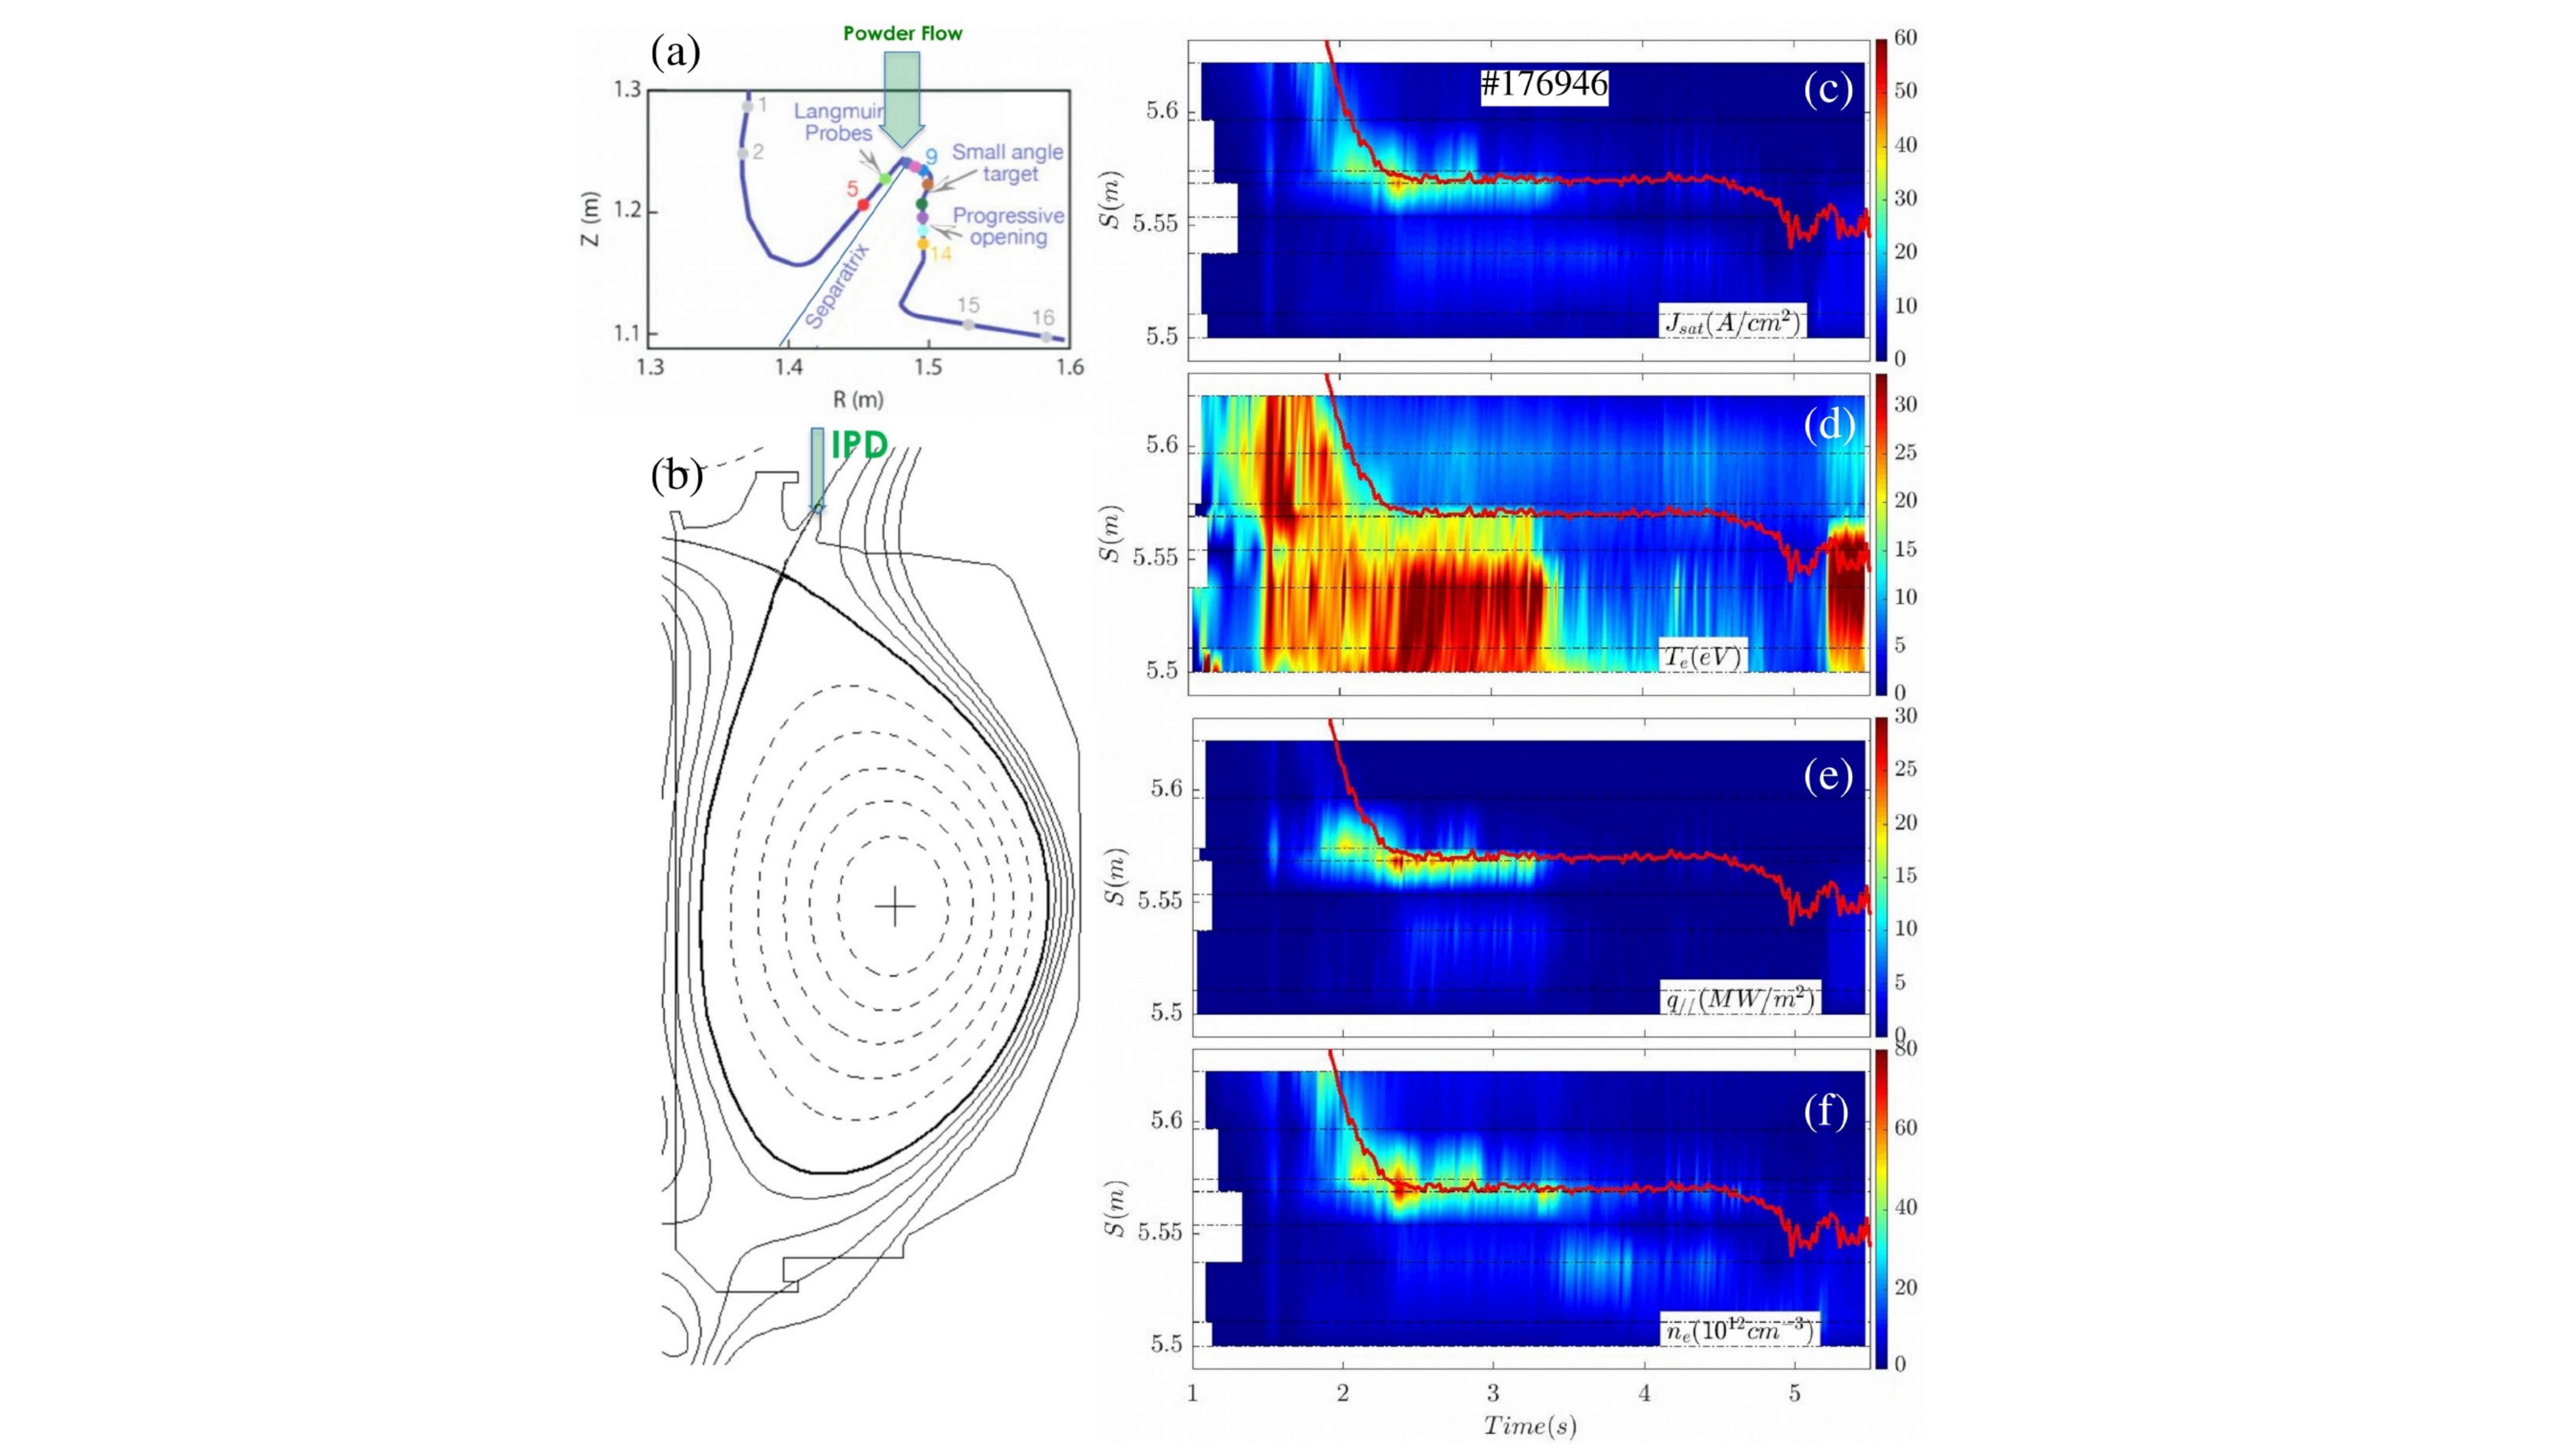 (a,b) Geometry of SAS divertor configuration. (c-f) Evolution of J$_{sat}$, T$_{e}$, q$_{||}$, n$_{e}$ measured by Langmuir probes in the SAS (S is the poloidal distance along the wall), in a plasma with ~10mg/s BN injection starting at 3 s. The red curve indicates the OSP location.